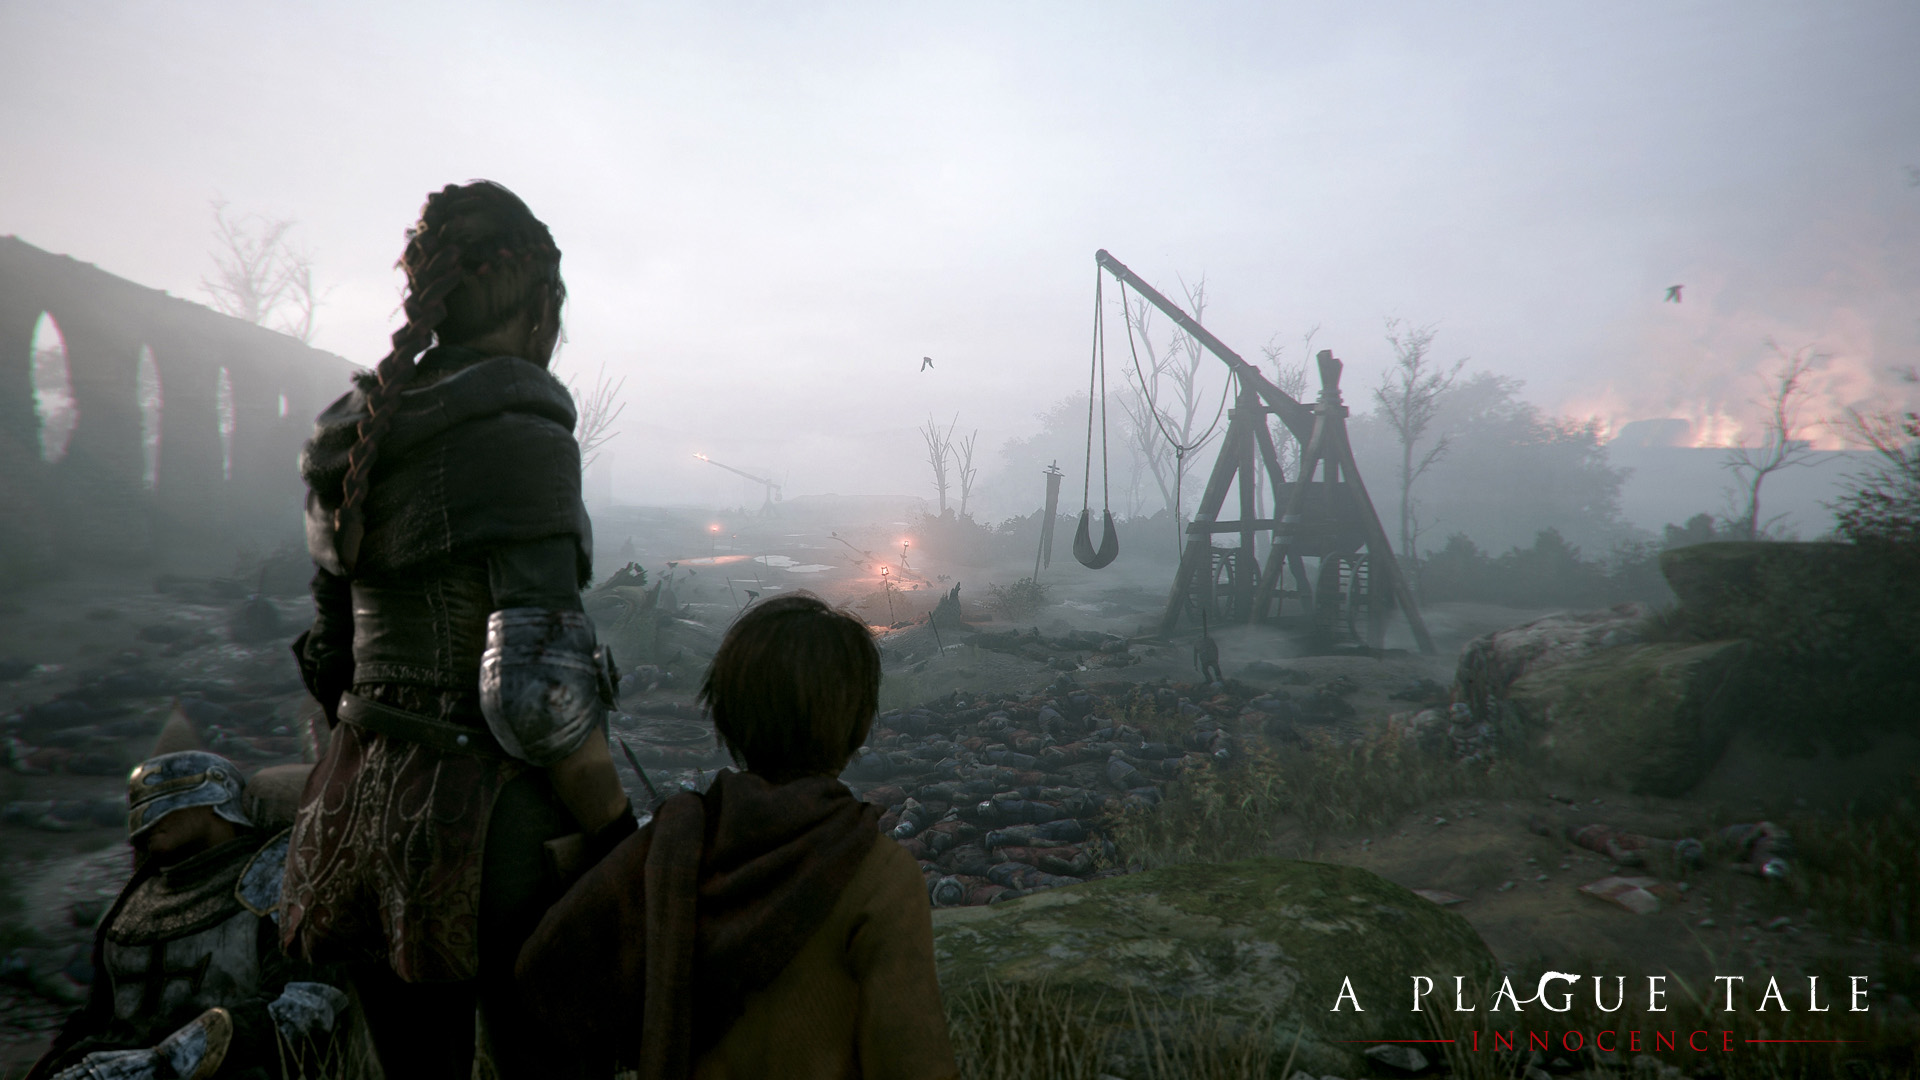 A_Plague_Tale-Innocence-Screenshot_09_logo.jpg